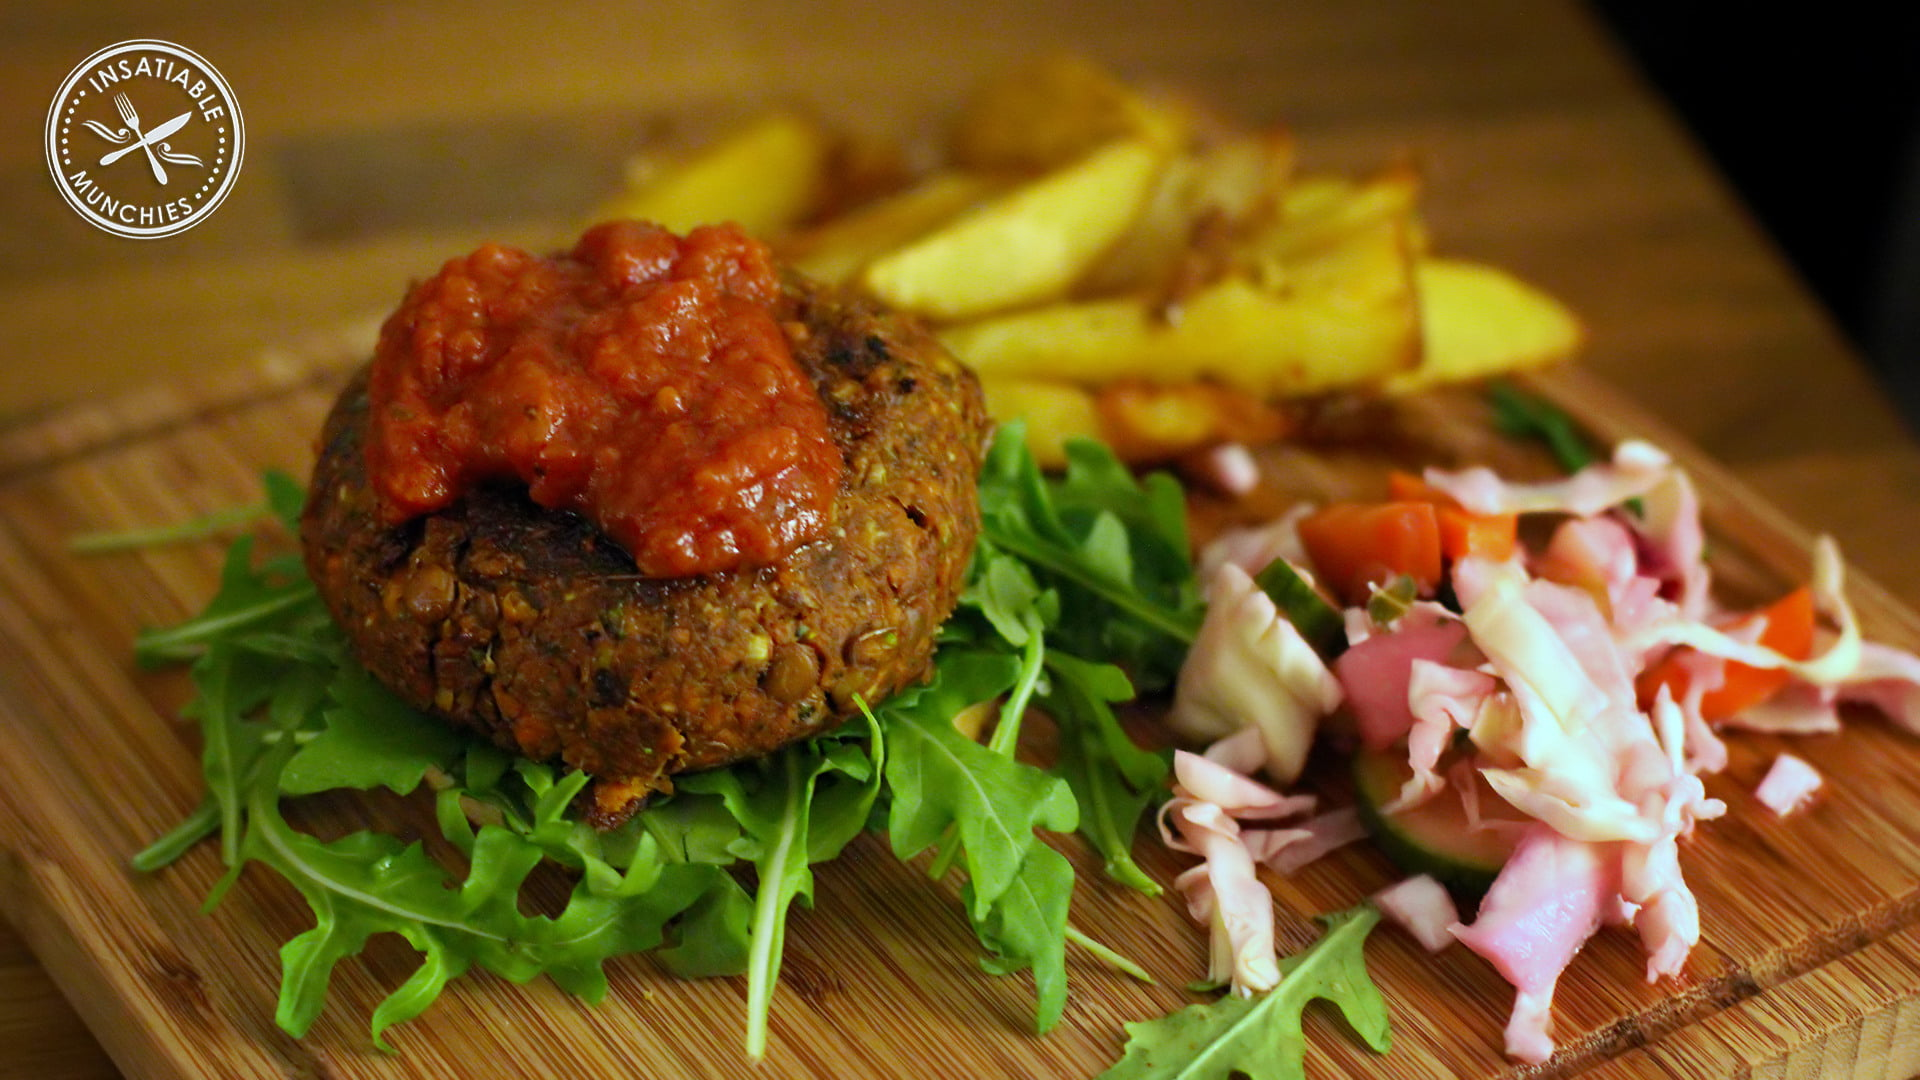 Lentil patty with a red sauce sits on fresh rocket leaves with shredded red cabbage and chips on the side.